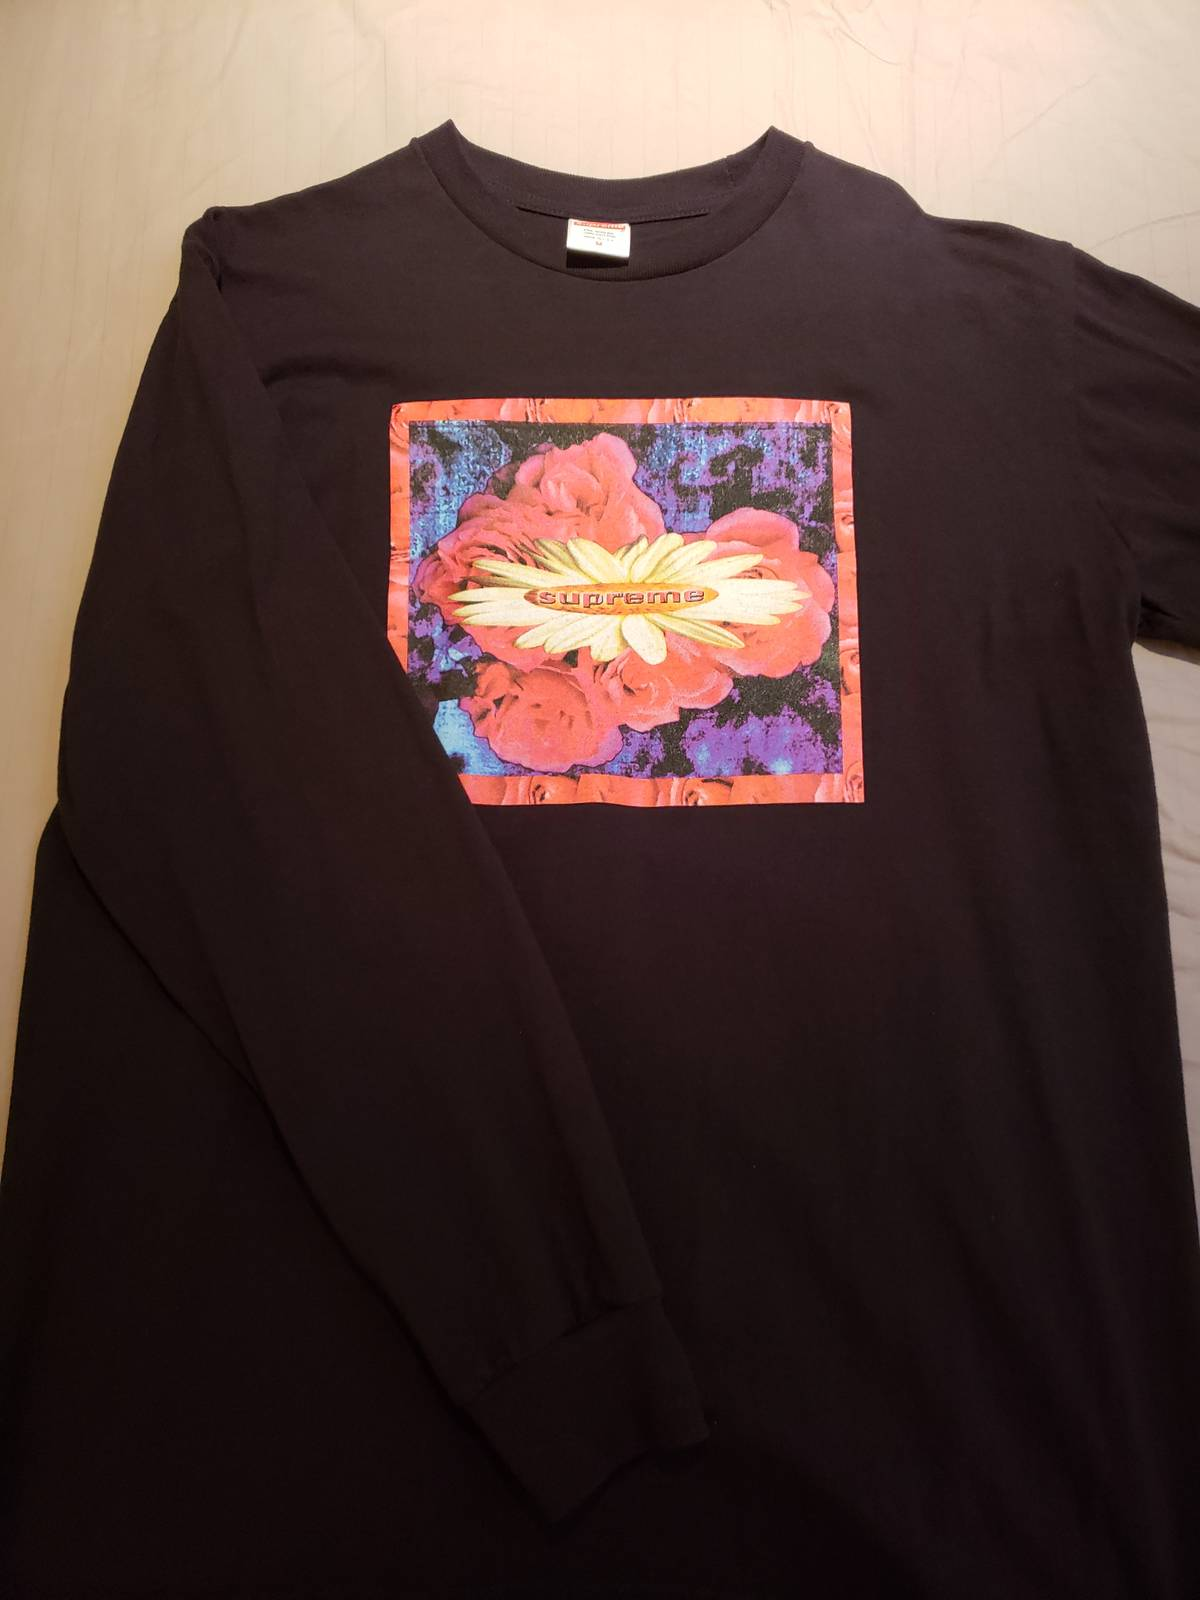 4c632a930e15d Supreme Oversized Bloom L s Long Sleeve Tee